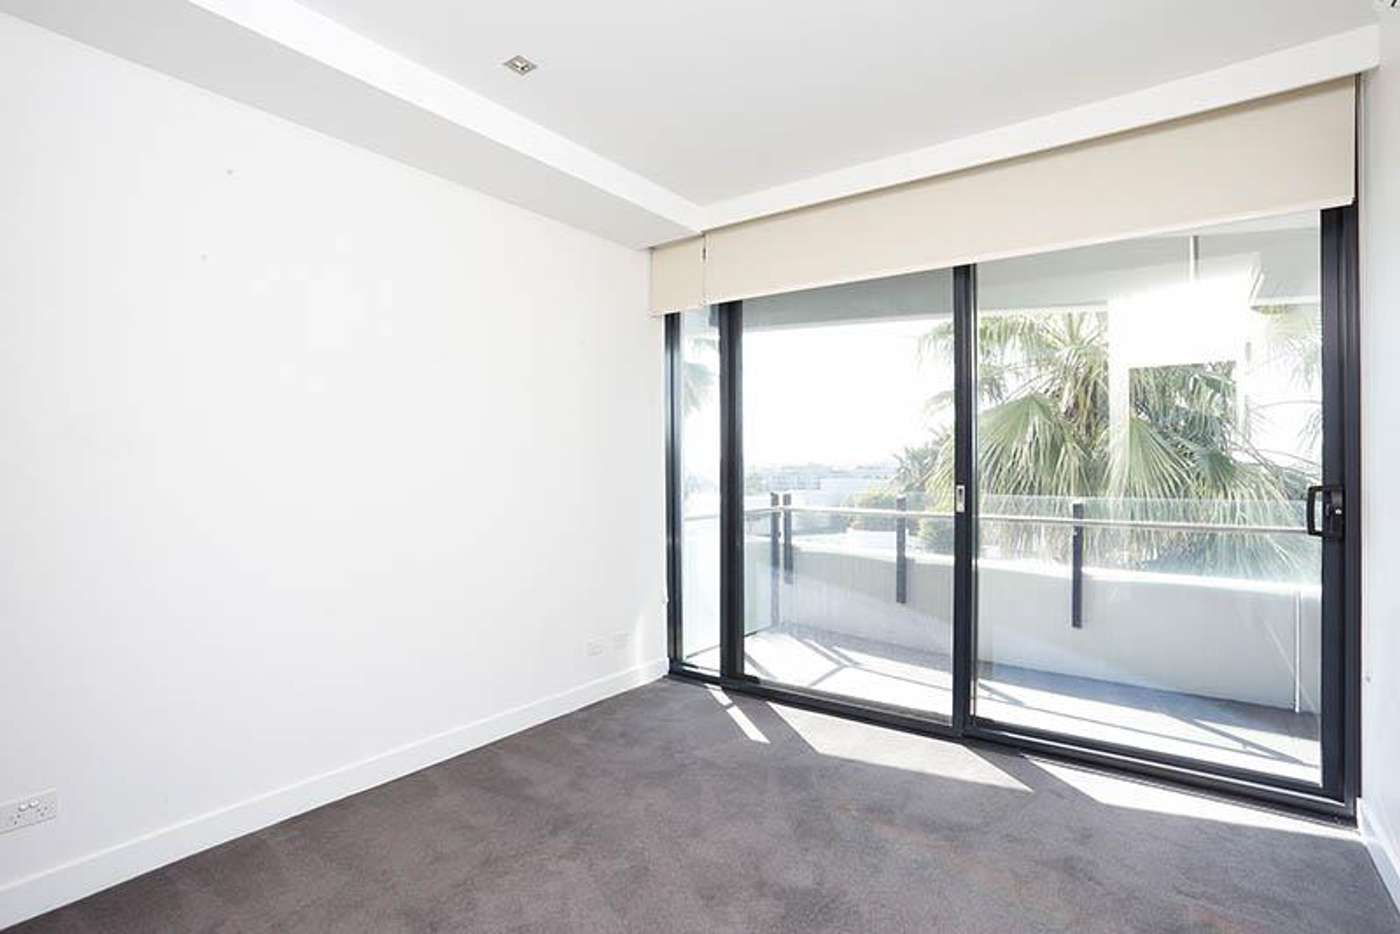 Sixth view of Homely apartment listing, 509/108 Bay Street, Port Melbourne VIC 3207